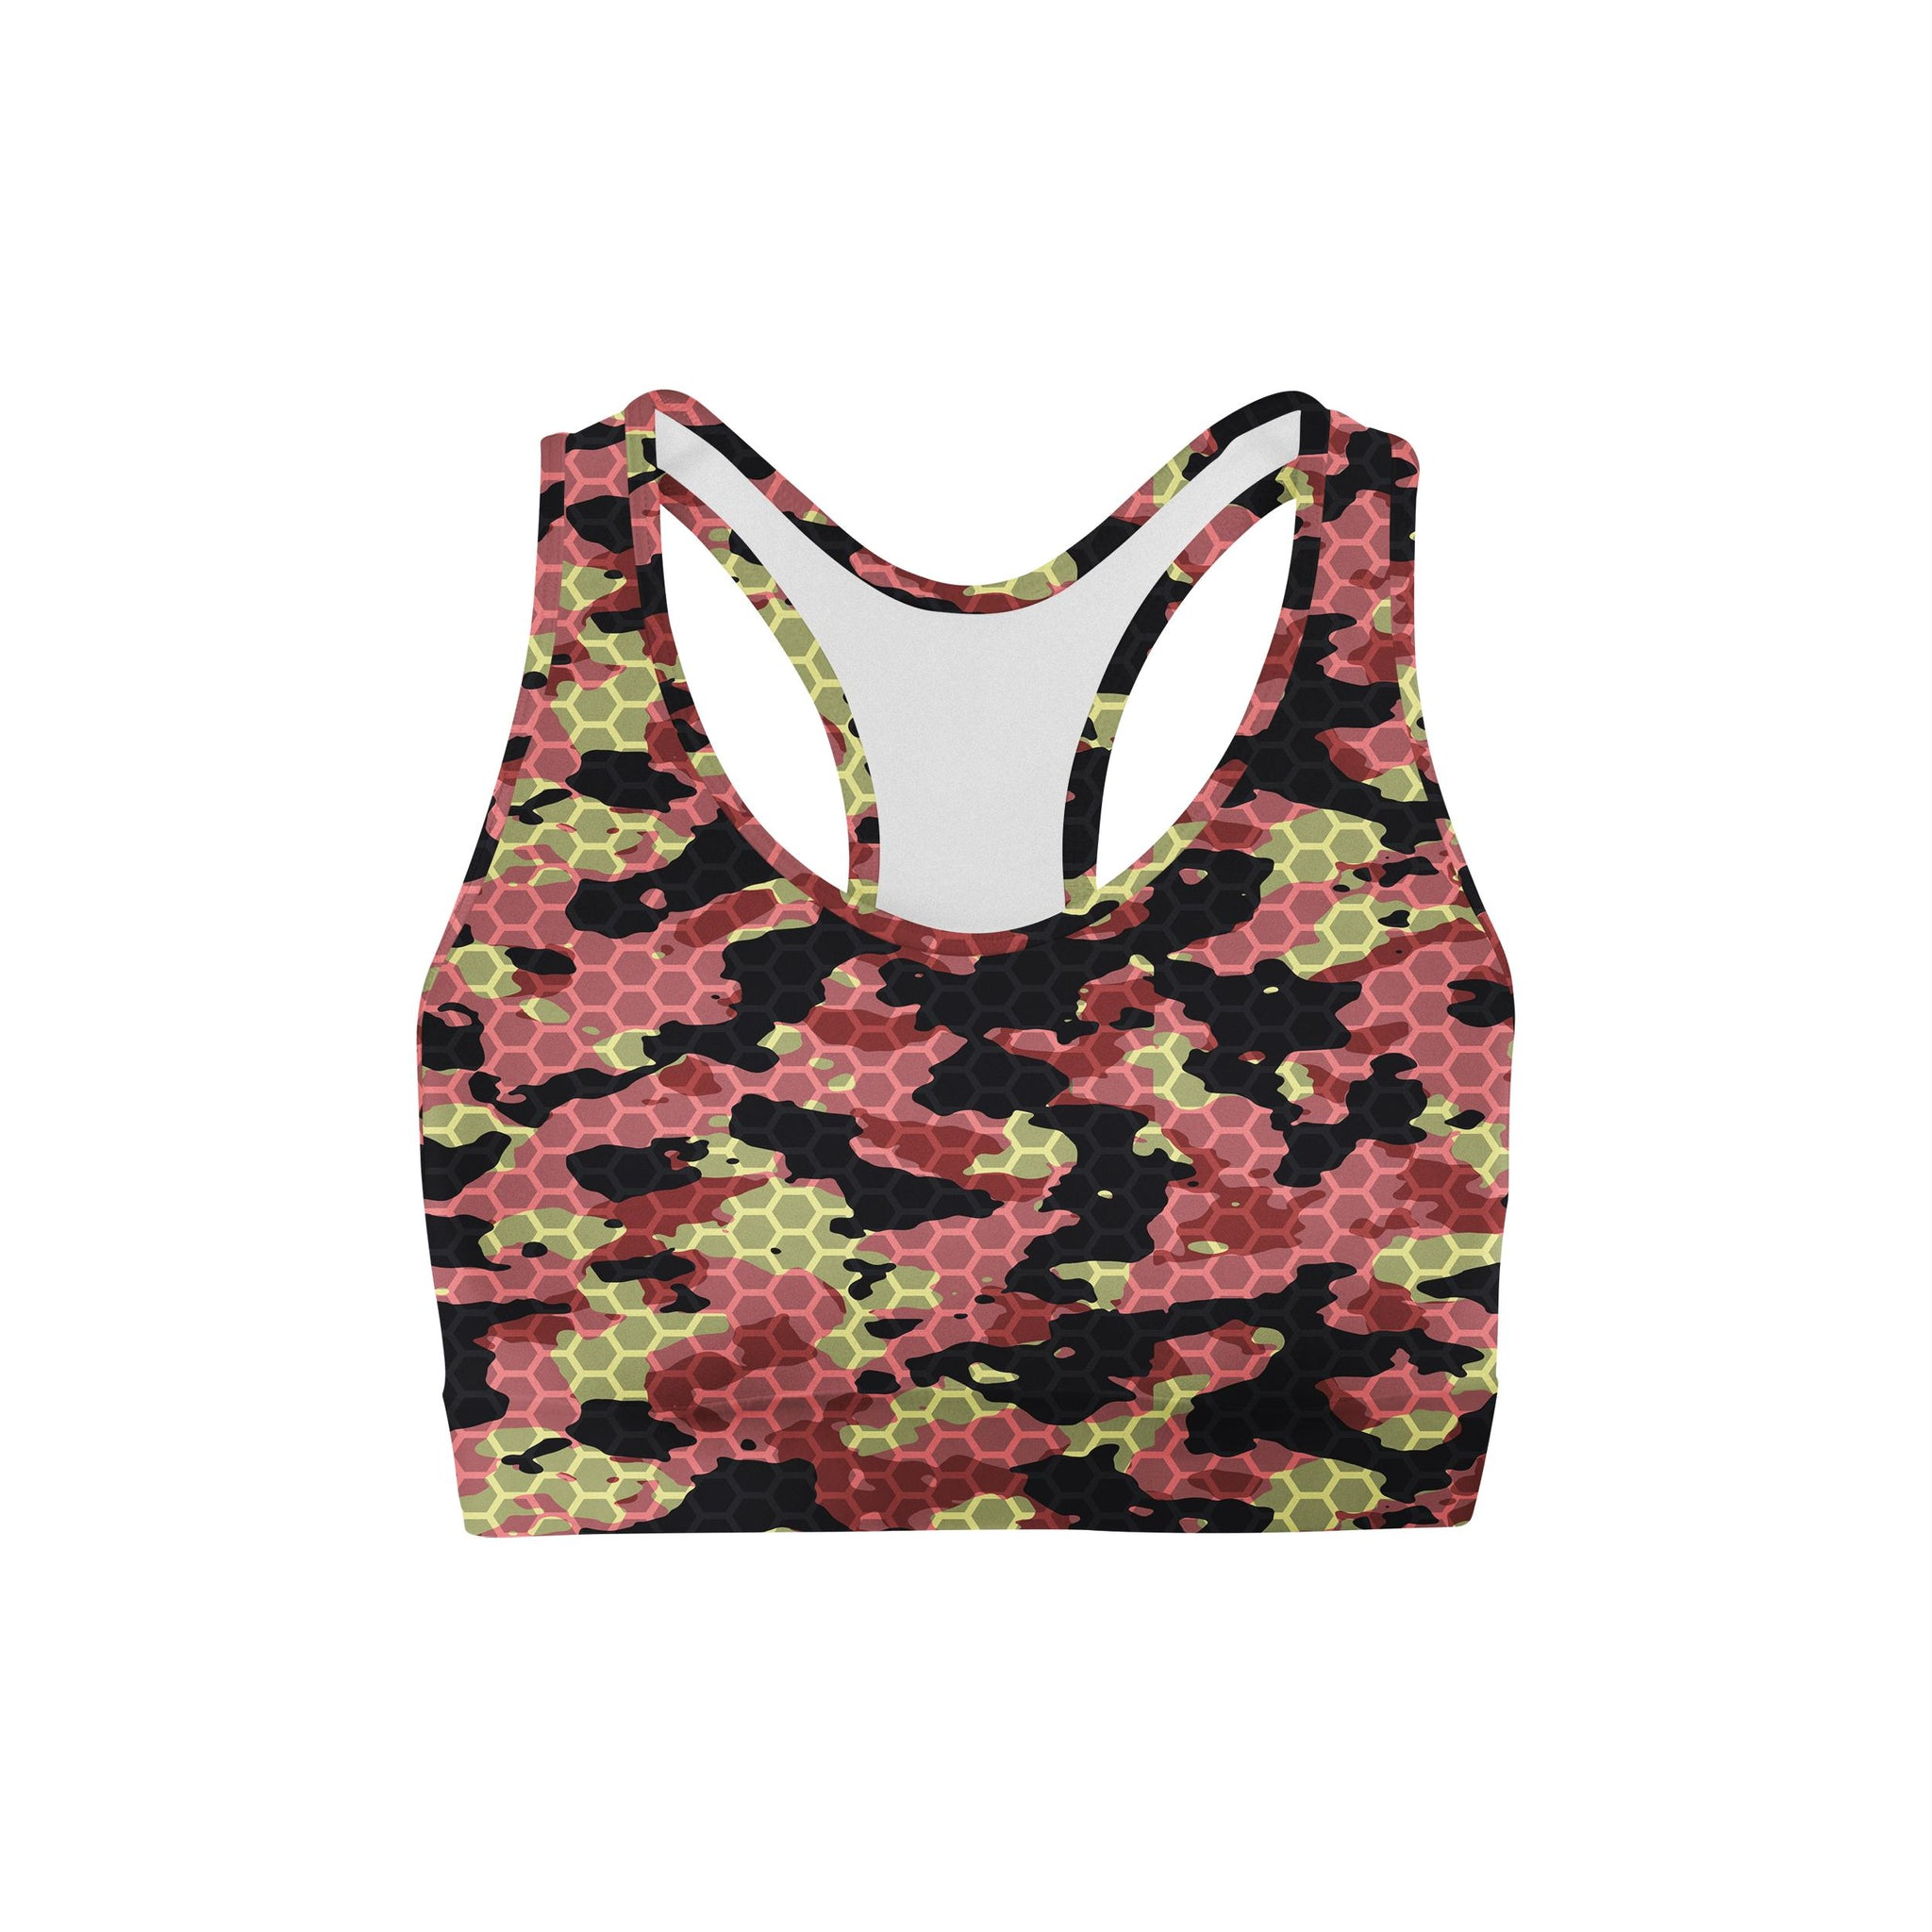 Watermelon Rush Camouflage Sports Bra